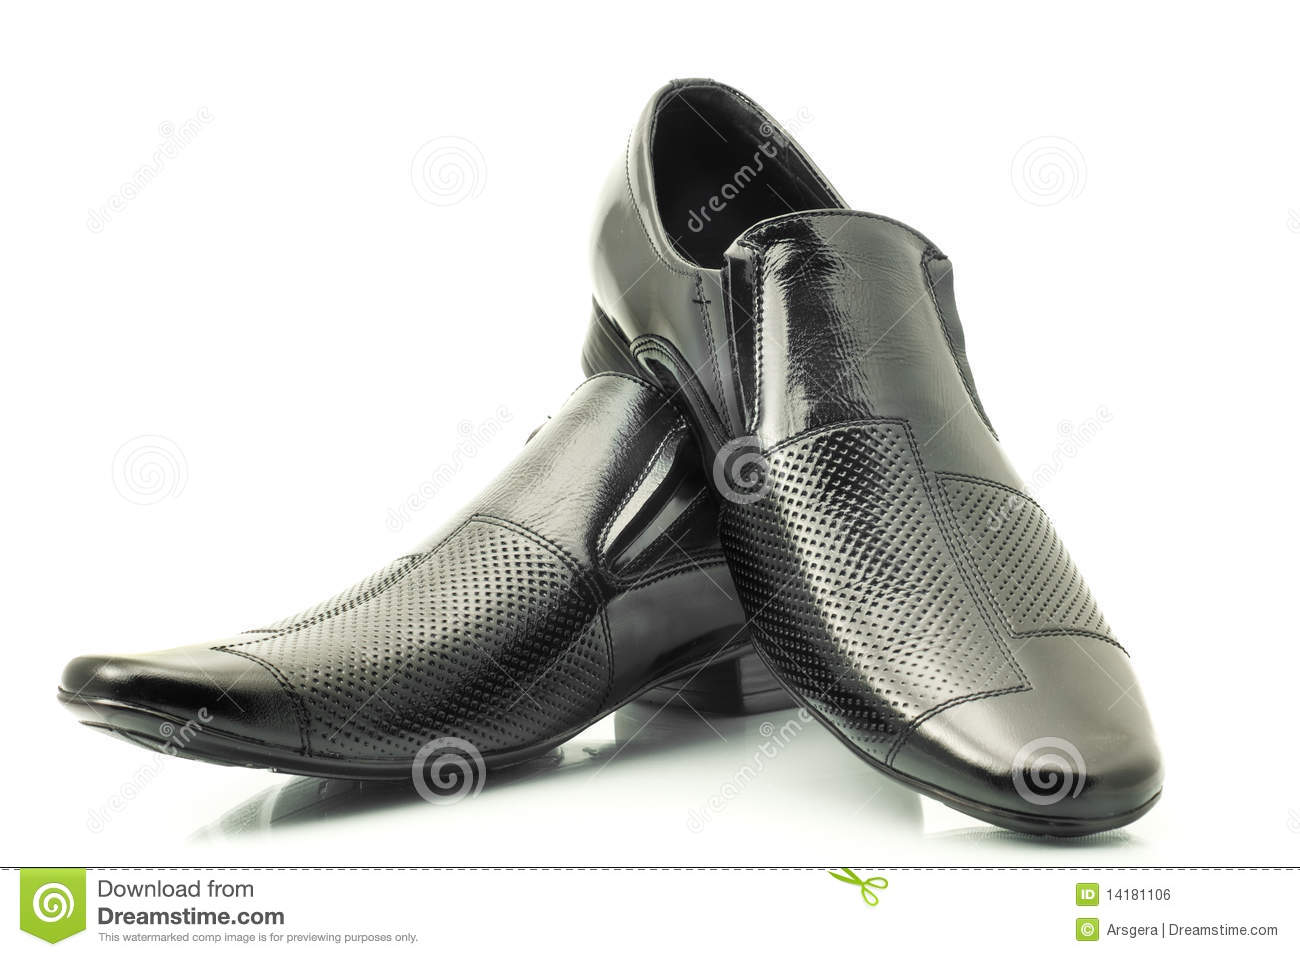 Classic Men's patent-leather shoes isolated over white background